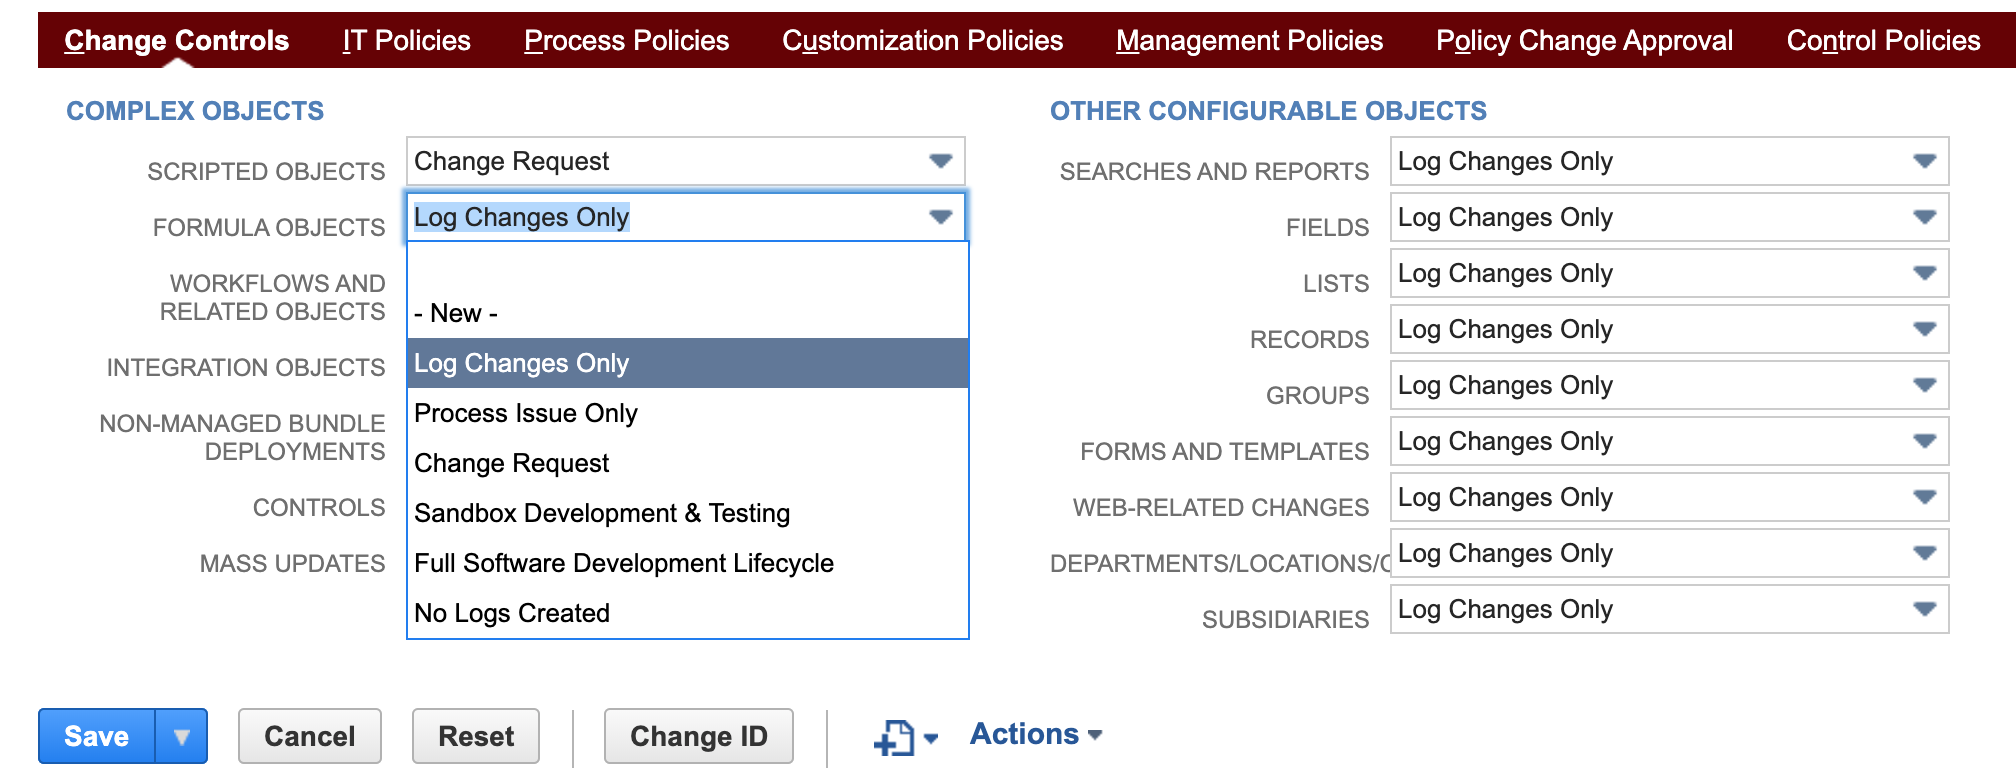 NetSuite Strongpoint Approval Policy list